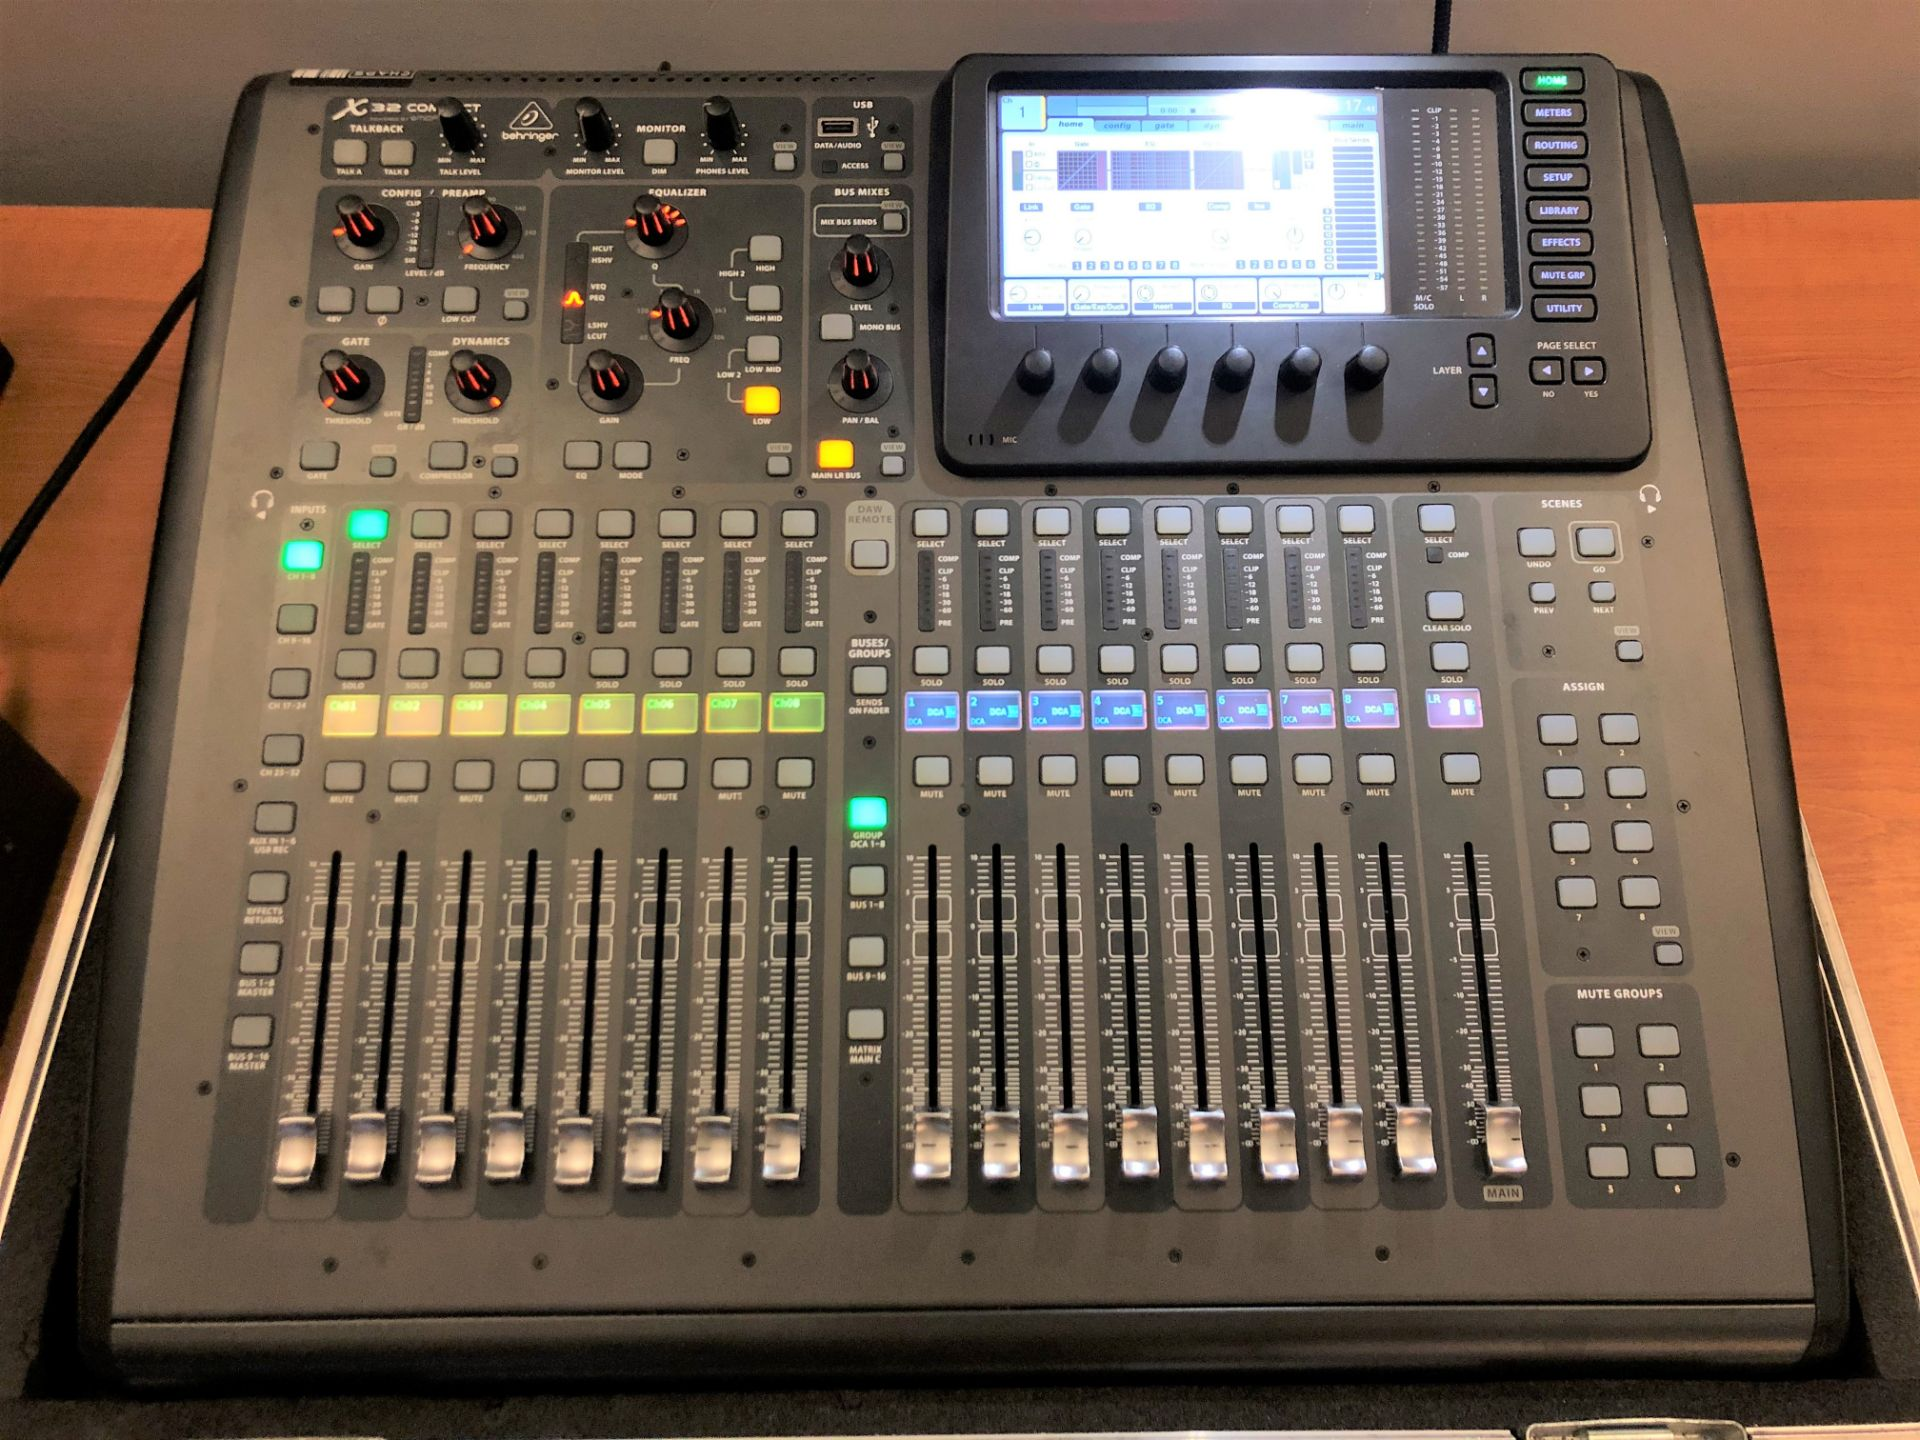 A Behringer Midas X32 Compact Digital Mixing Console with Behringer Midas S16 I/O Stage Box, 50m - Image 2 of 4